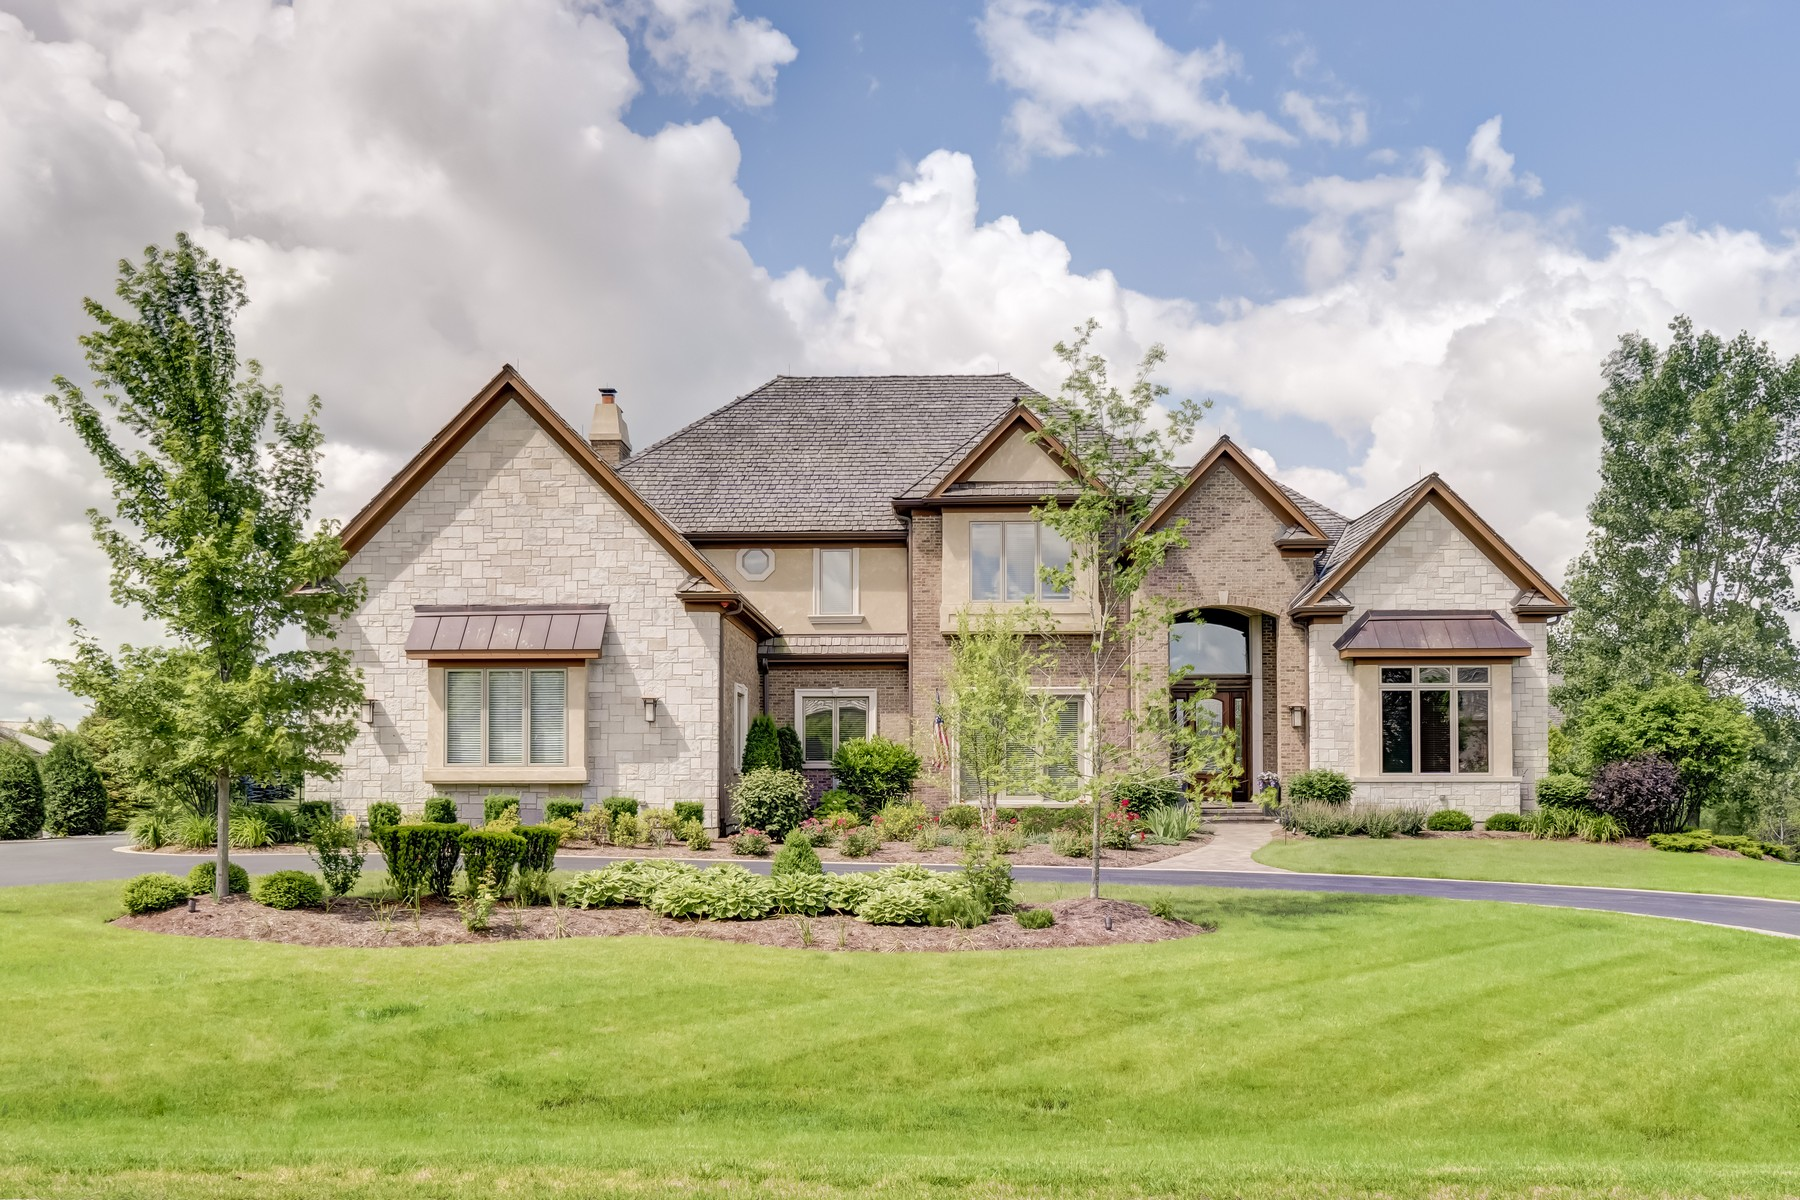 Single Family Home for Sale at Beautiful Luxurious Custom Built Home 1220 Macalpin Drive Inverness, Illinois 60010 United States